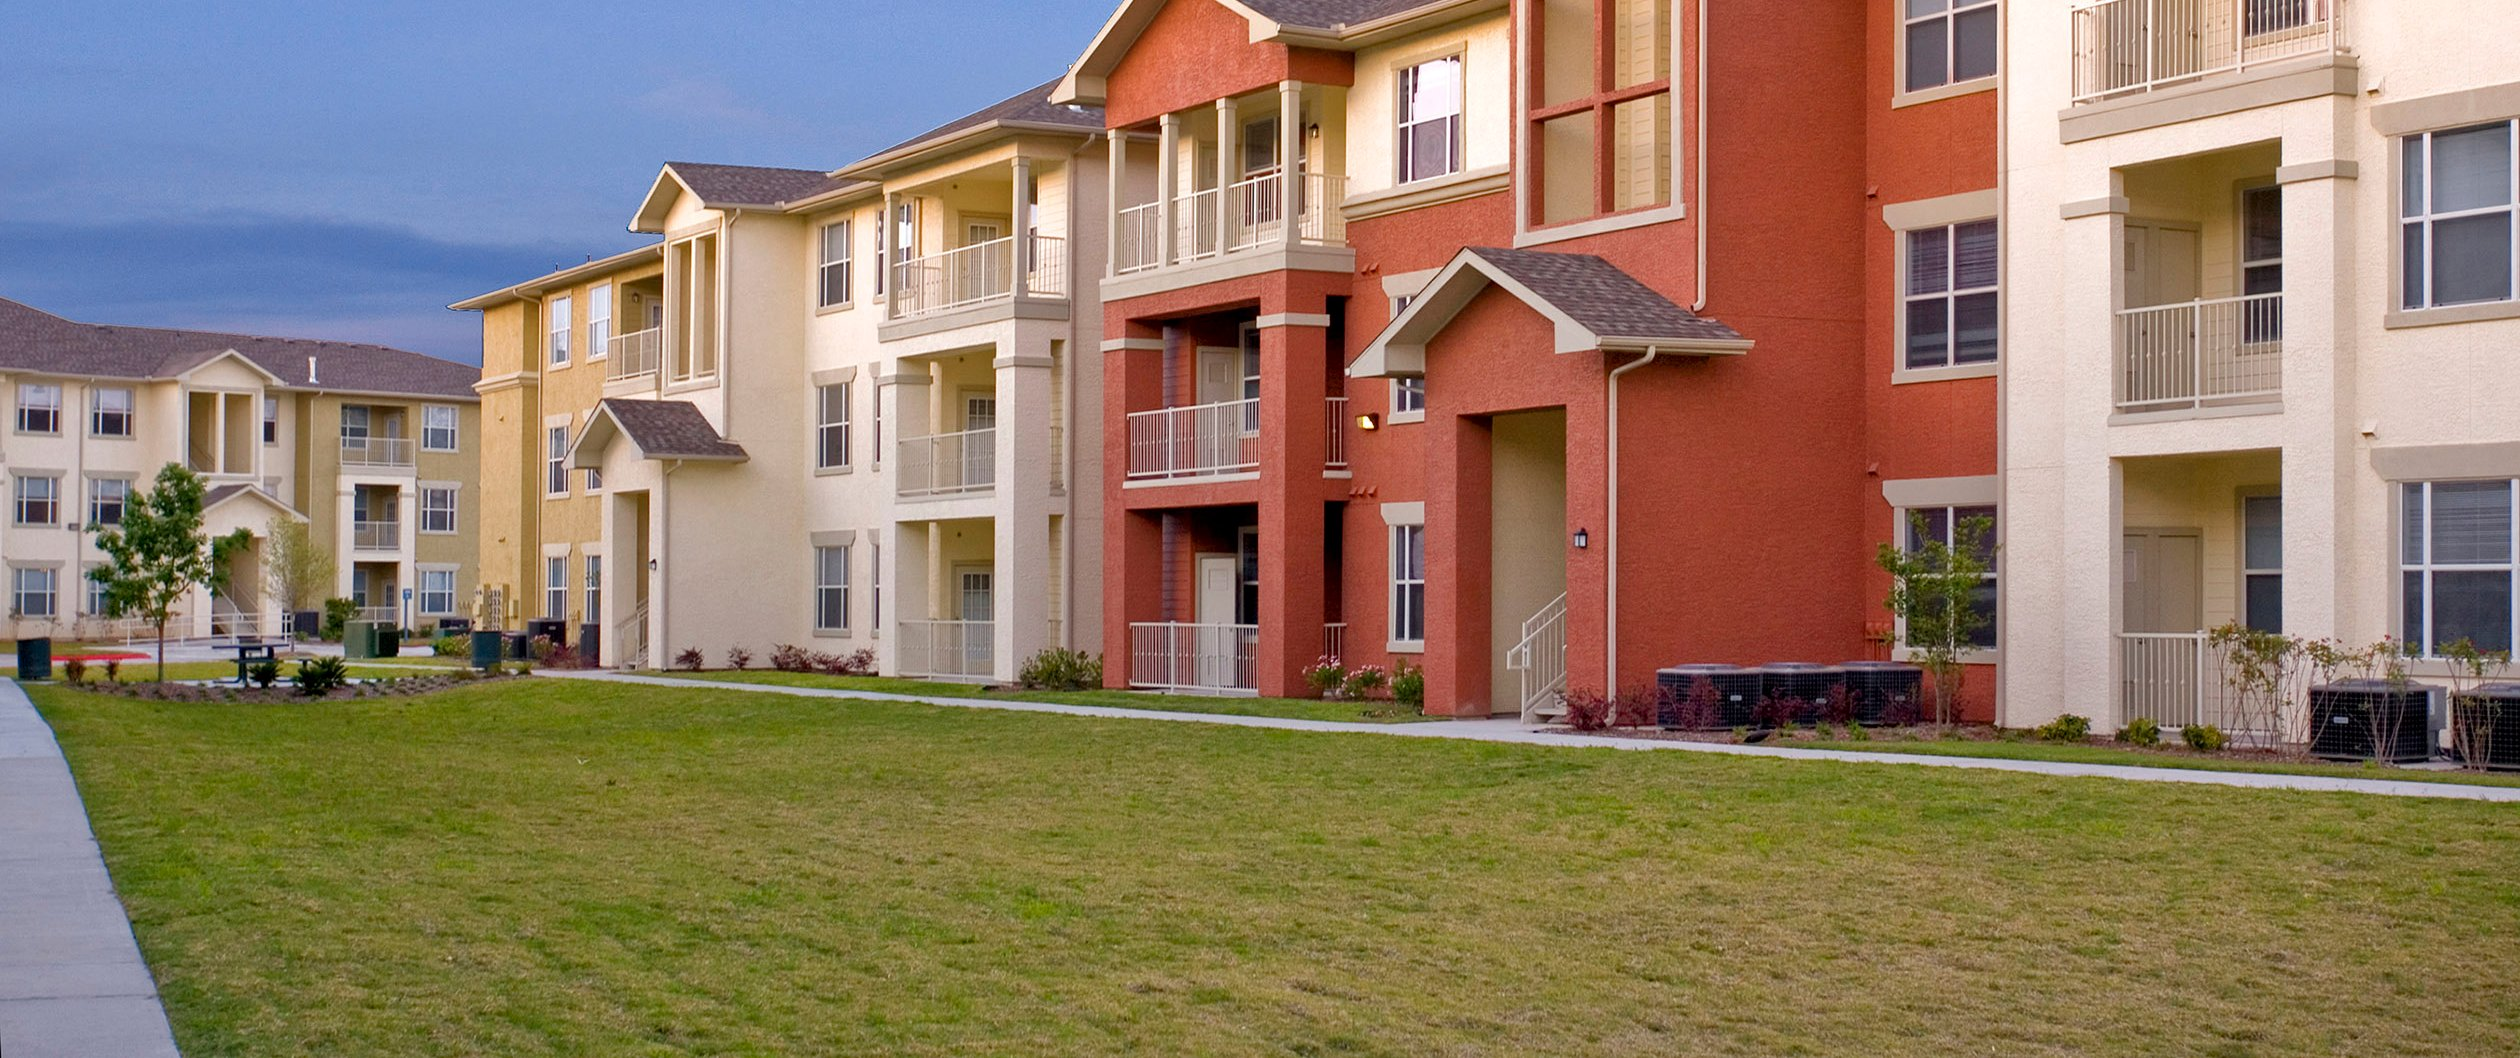 Low Income Apartments On 1960 Houston Tx  Latest